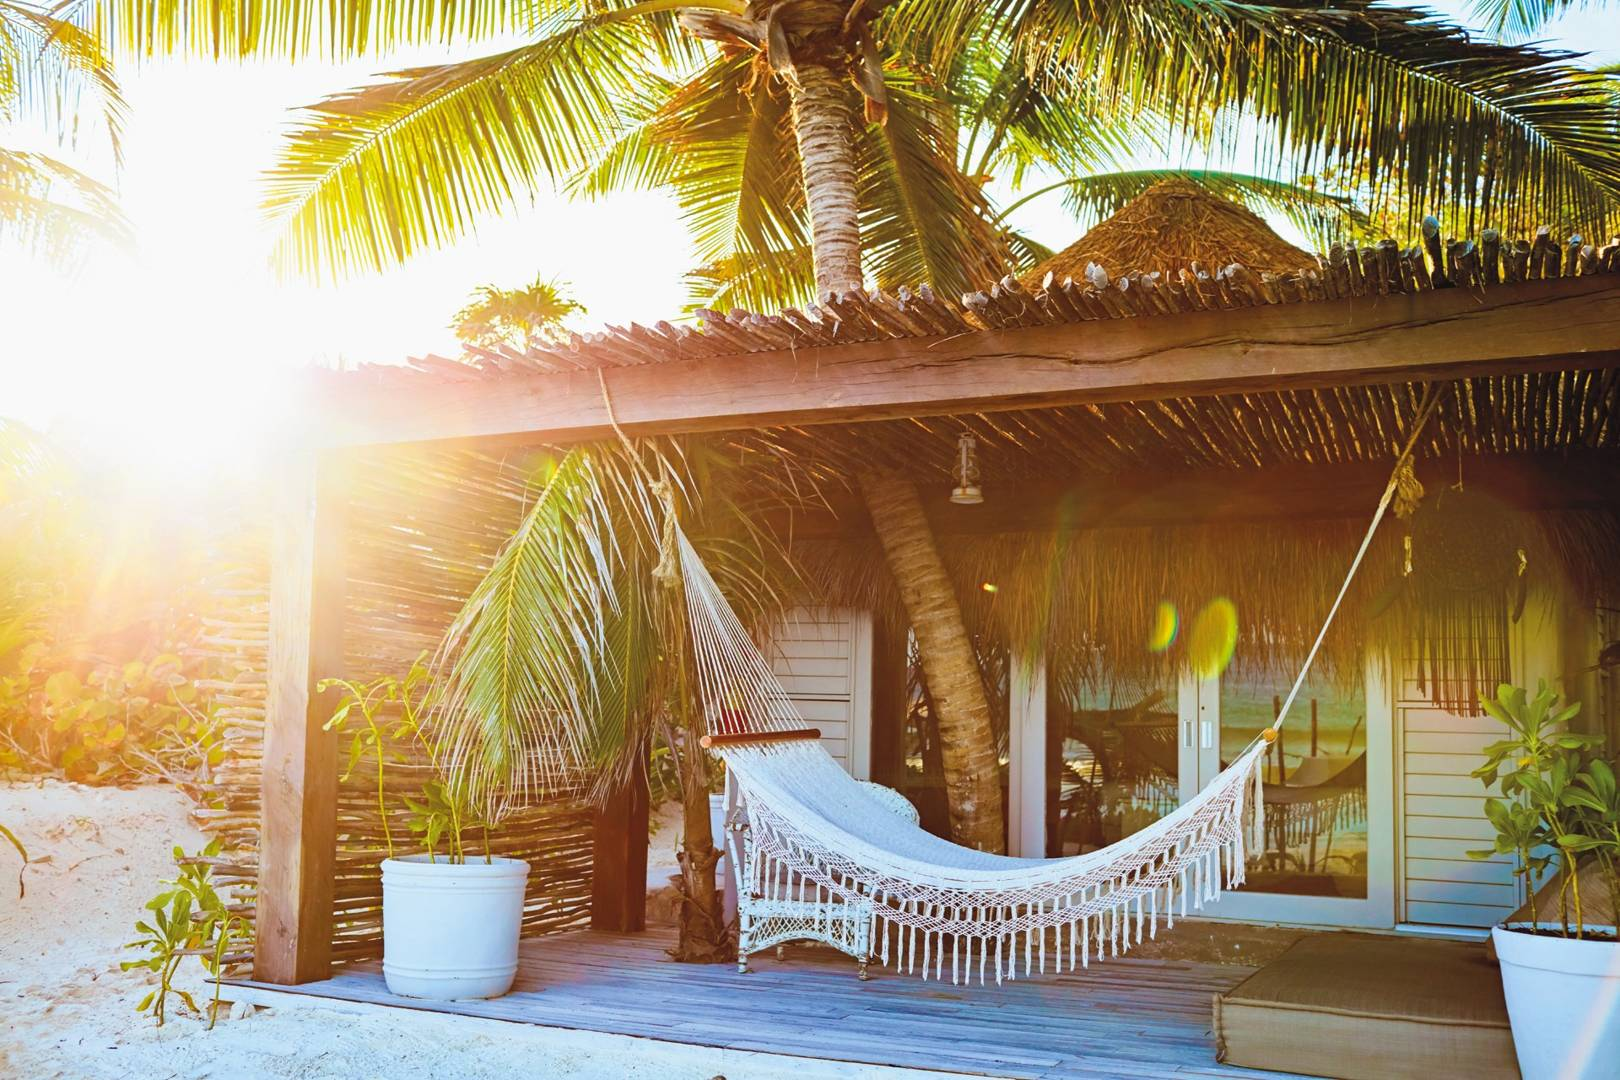 cabana-at-sunset-at-the-nomade-tulum-mexico-conde-nast-traveller